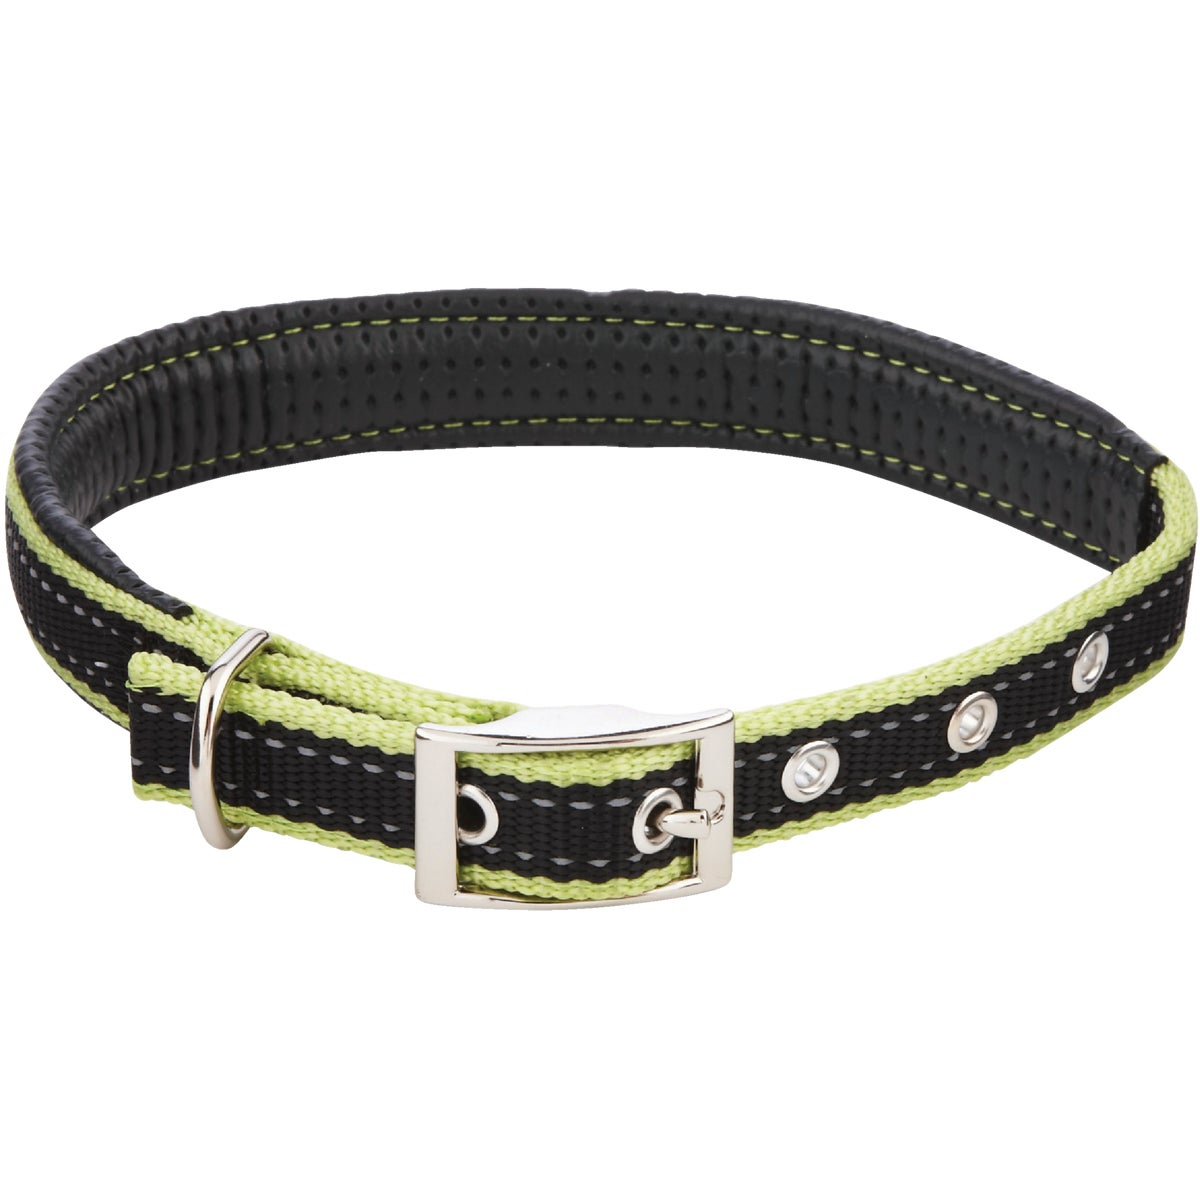 MD REFLECTECH DOG COLLAR - 32734 by Westminster Pet